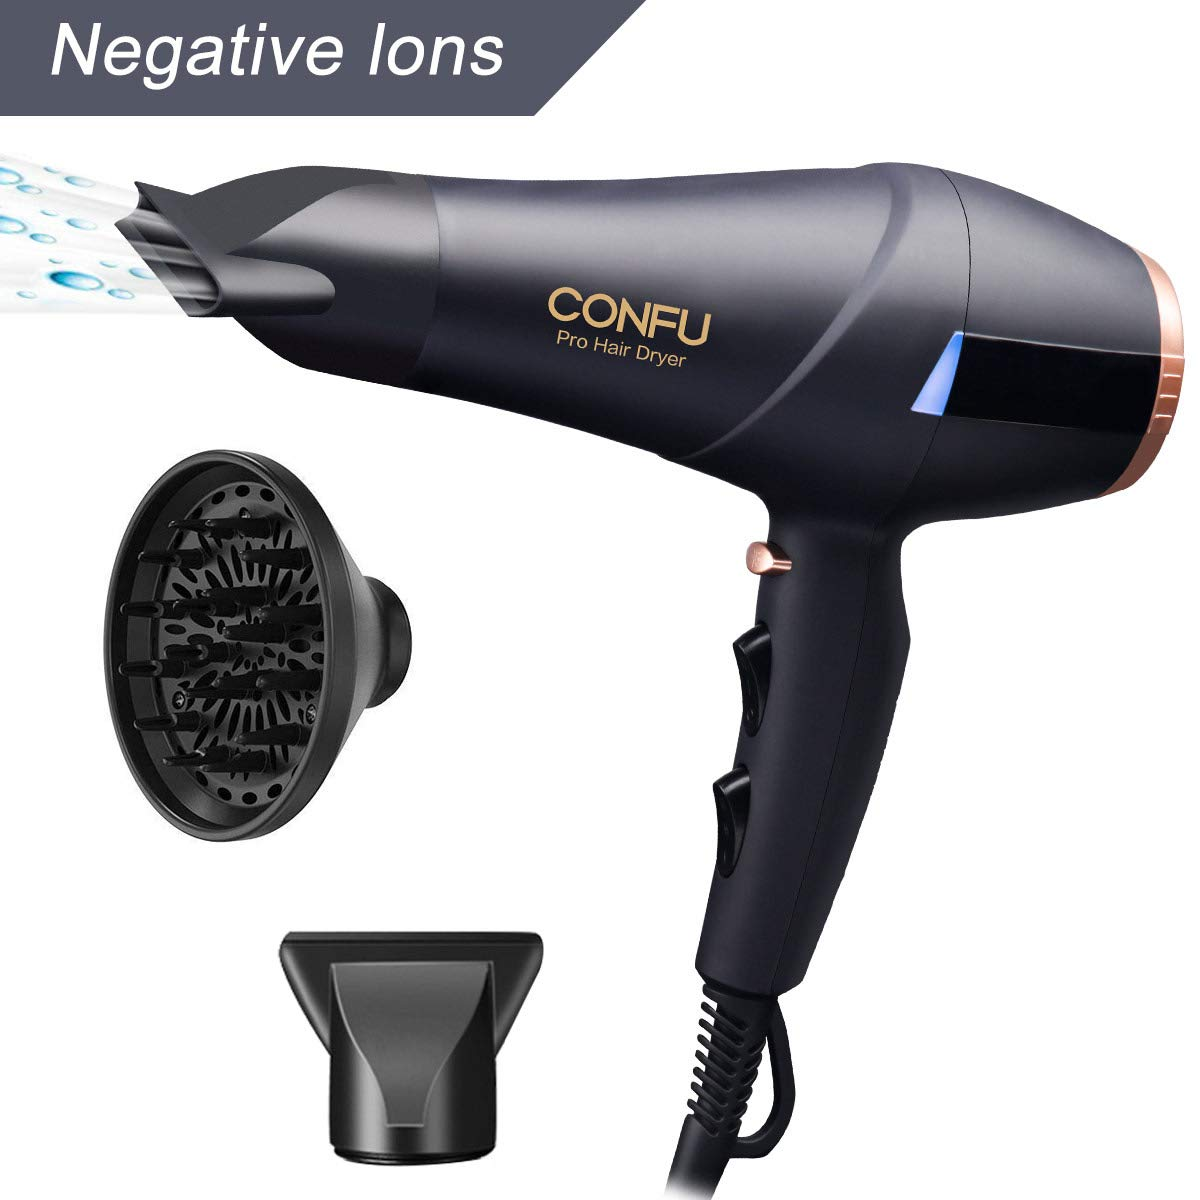 2300W Professional Hair Dryer With Diffuser Nozzles Set, Ionic Salon Powerful Hairdryer AC Motor, CONFU Fast Blow Dryer With 3 Heat 2 Speed Cool Shot Long Cable Quiet Black KF-5899